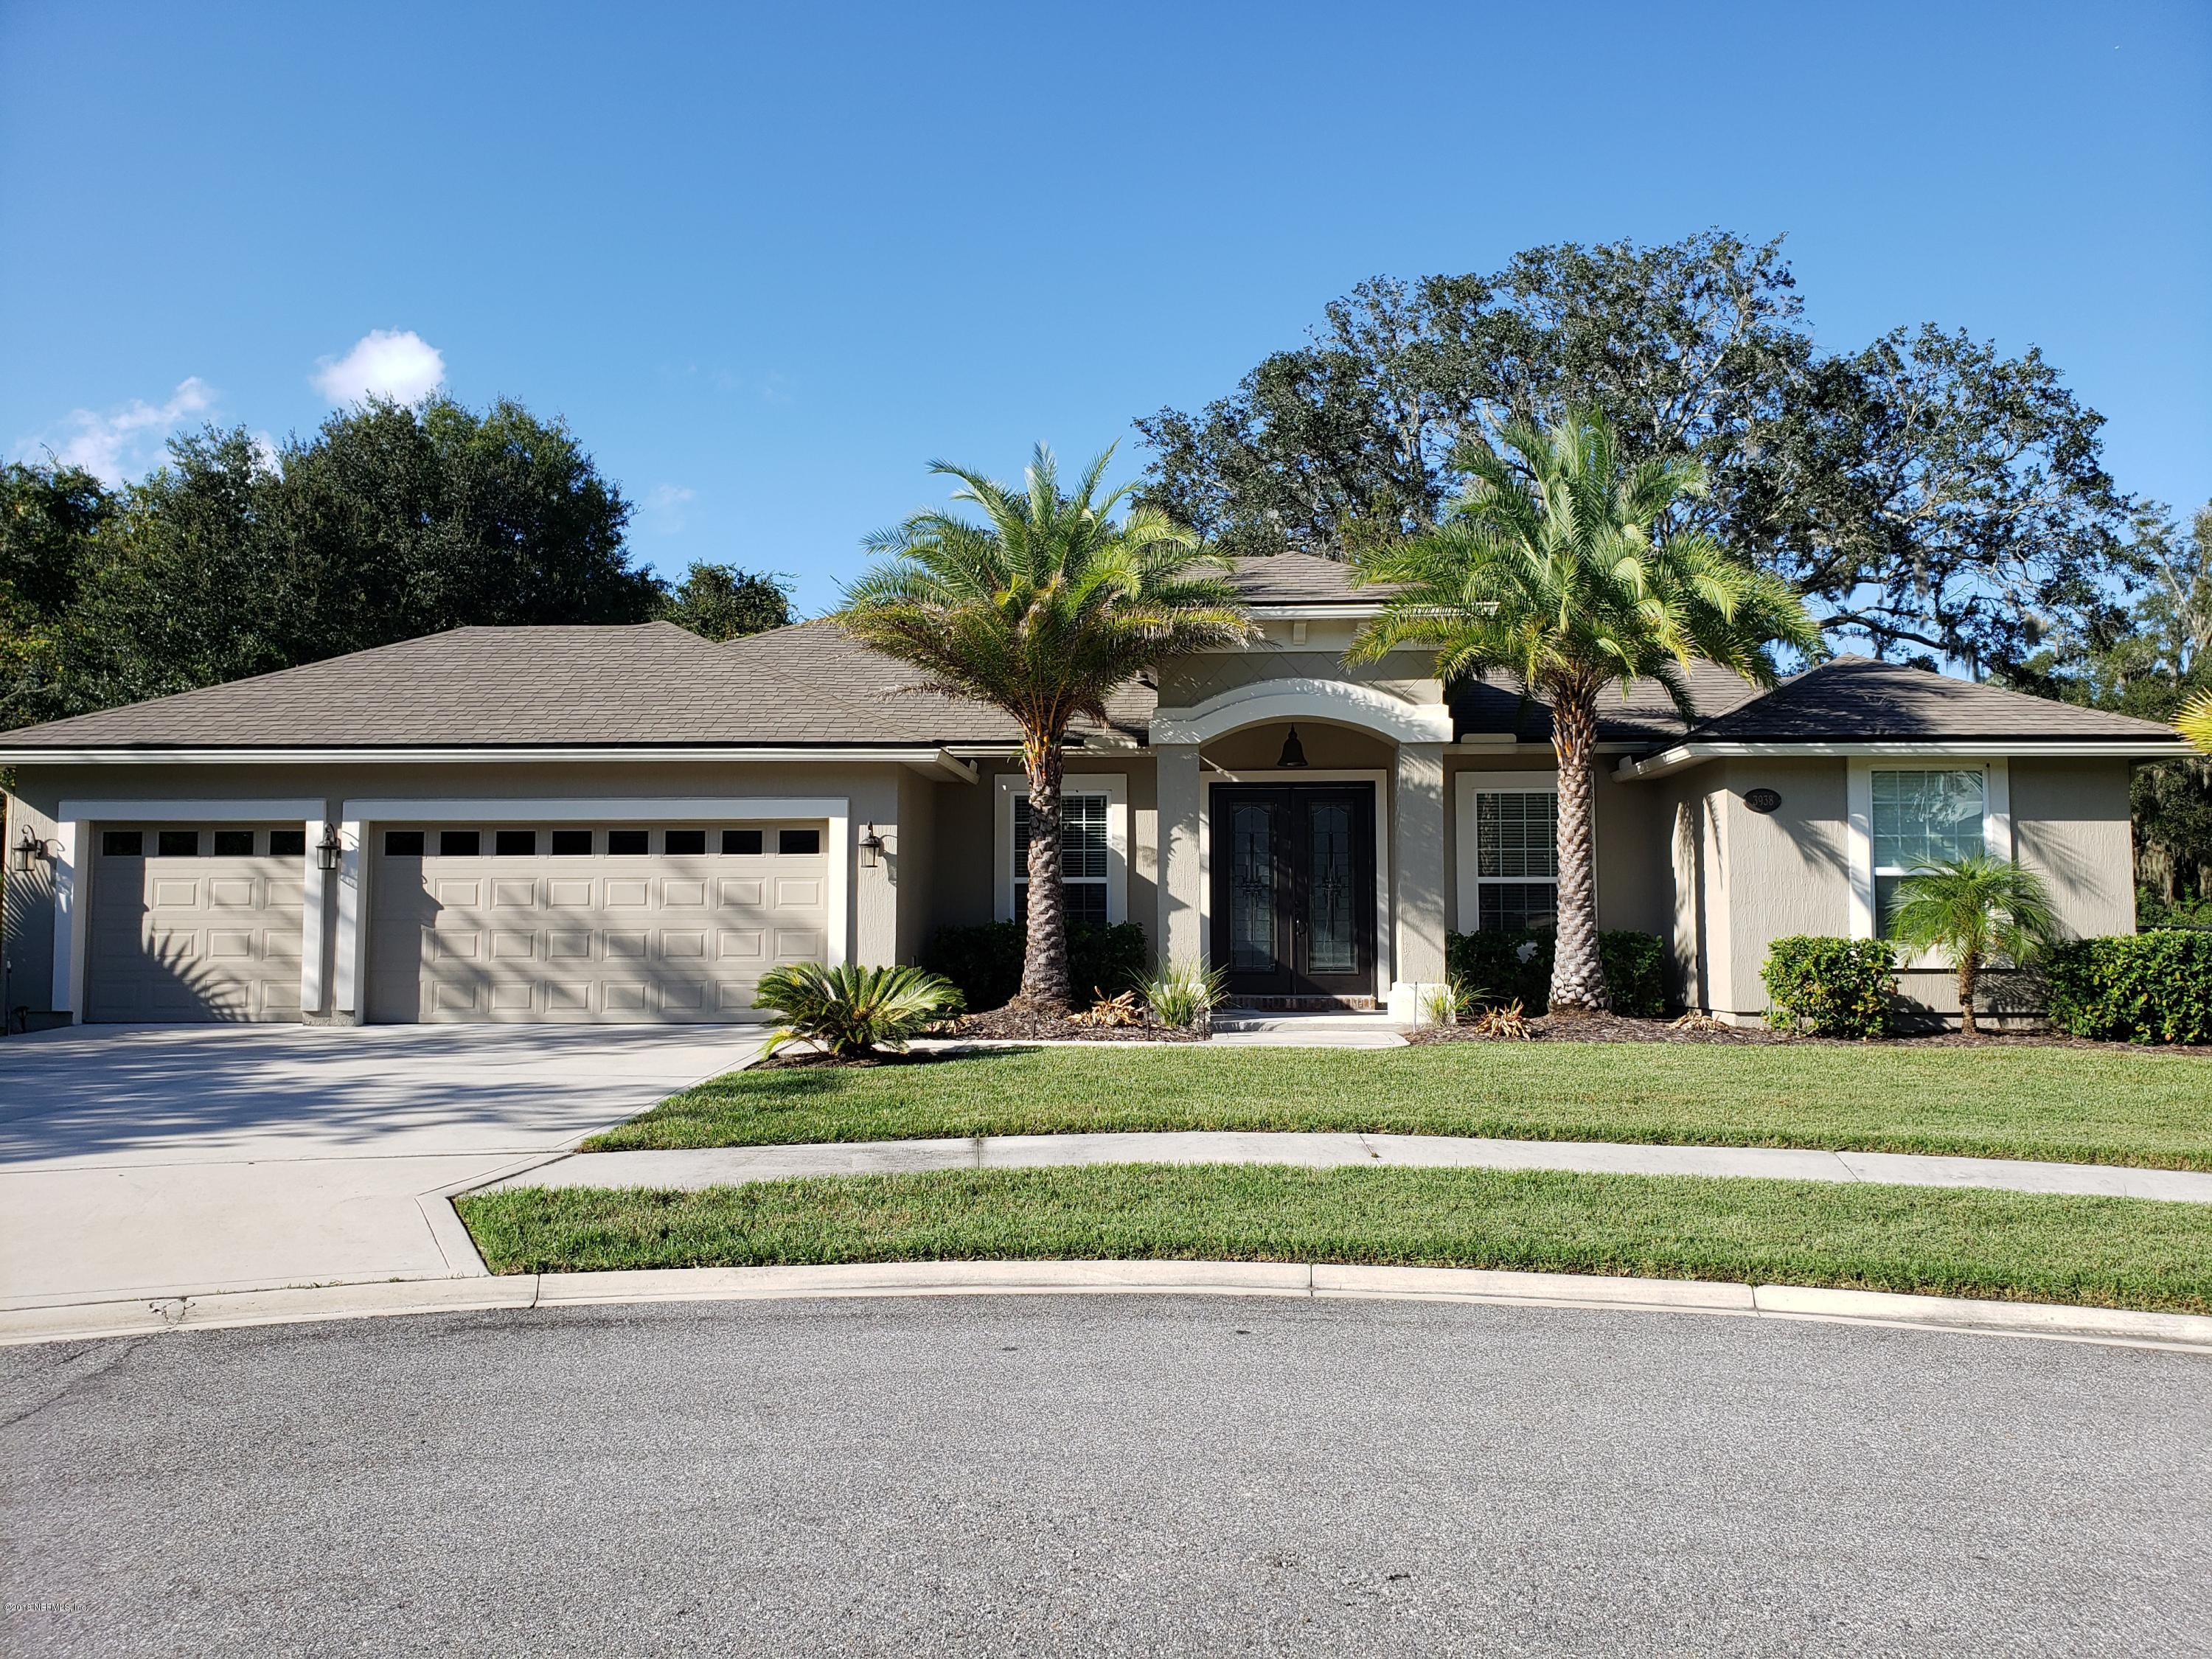 590 ATHENS, ST AUGUSTINE, FLORIDA 32092, 4 Bedrooms Bedrooms, ,3 BathroomsBathrooms,Residential - single family,For sale,ATHENS,961723